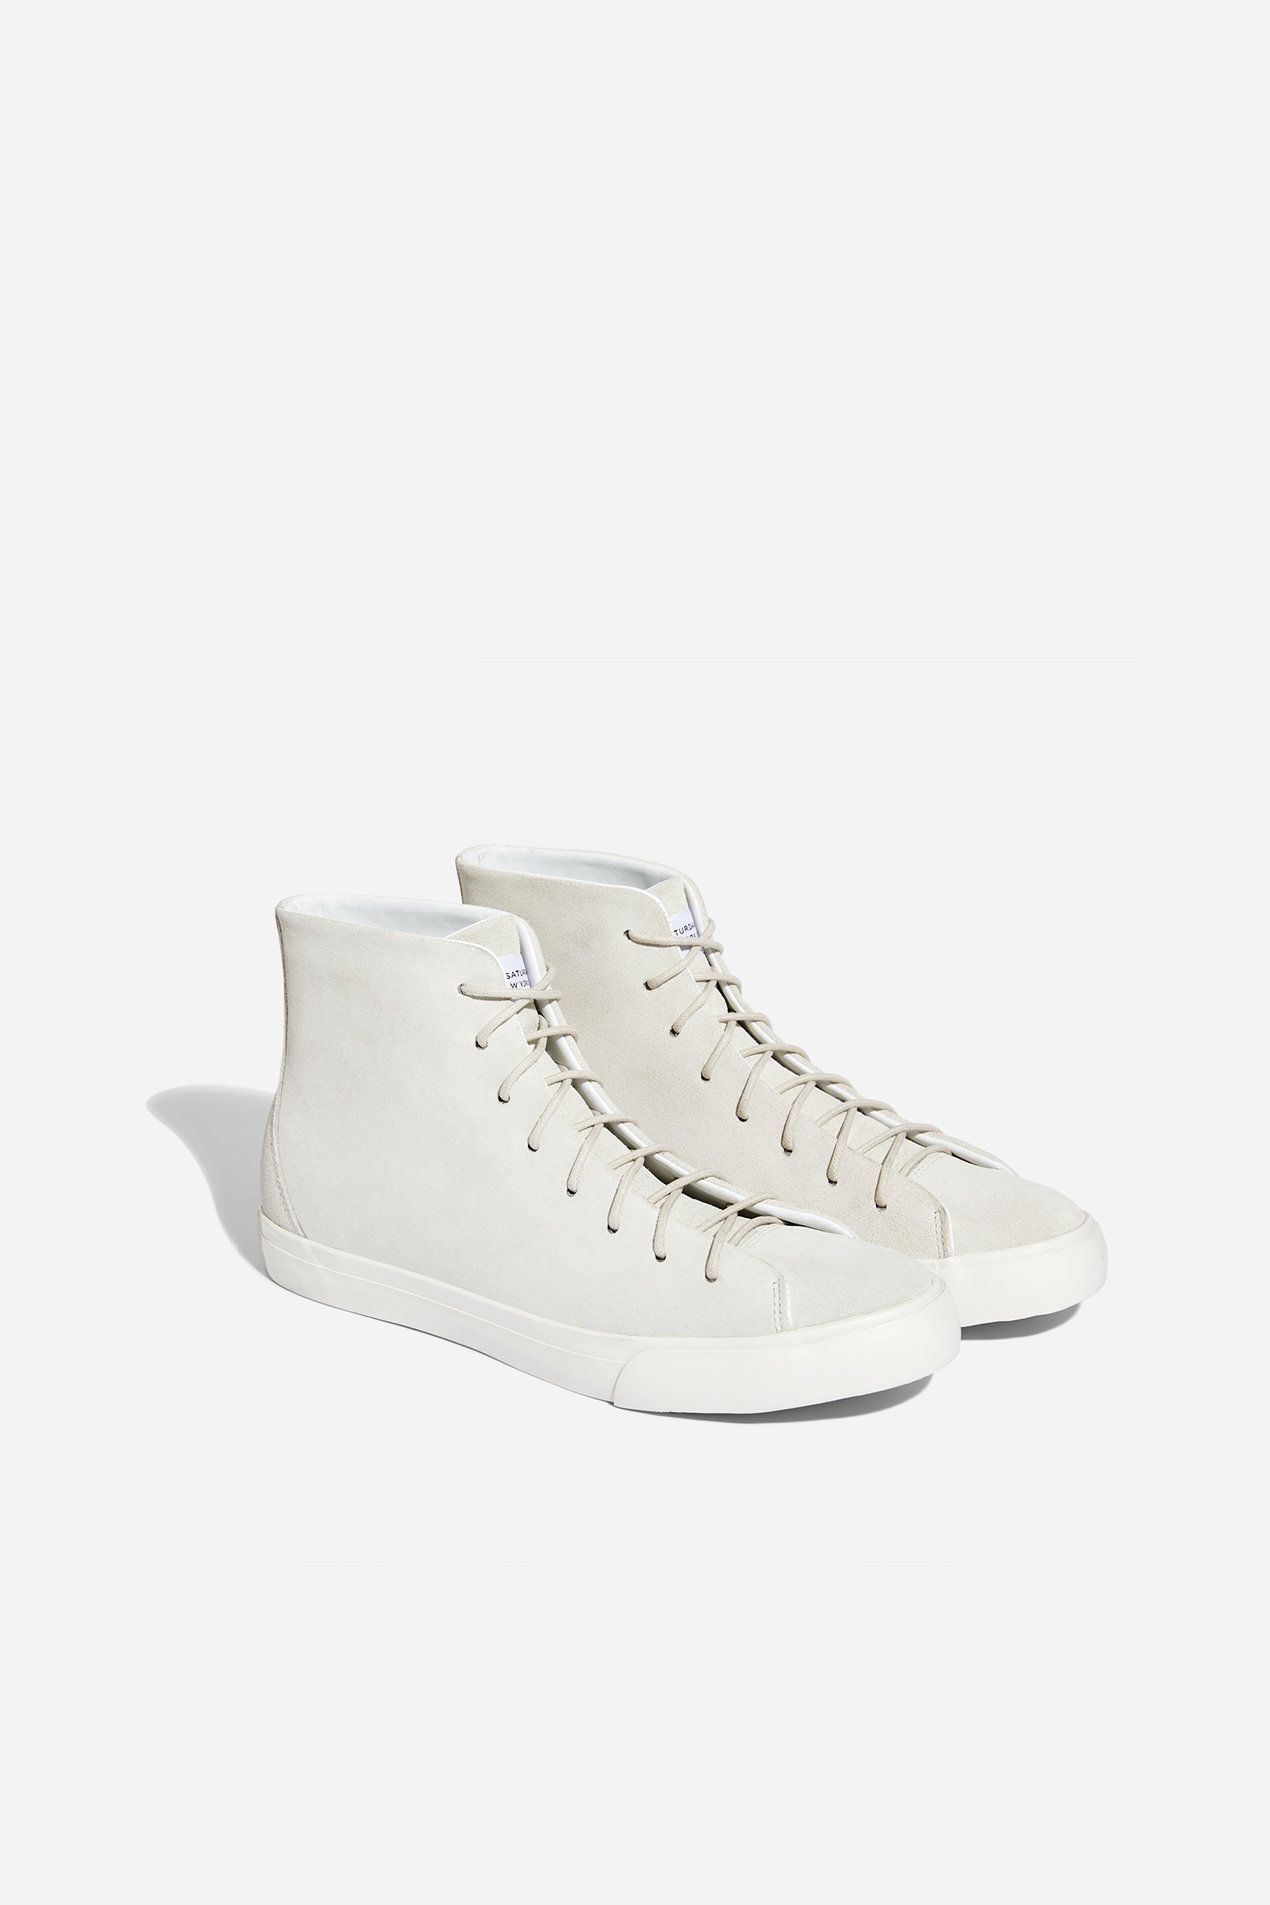 74781121f8d Mike High Suede Sneaker, Ivory | clothes | Suede sneakers, Sneakers ...